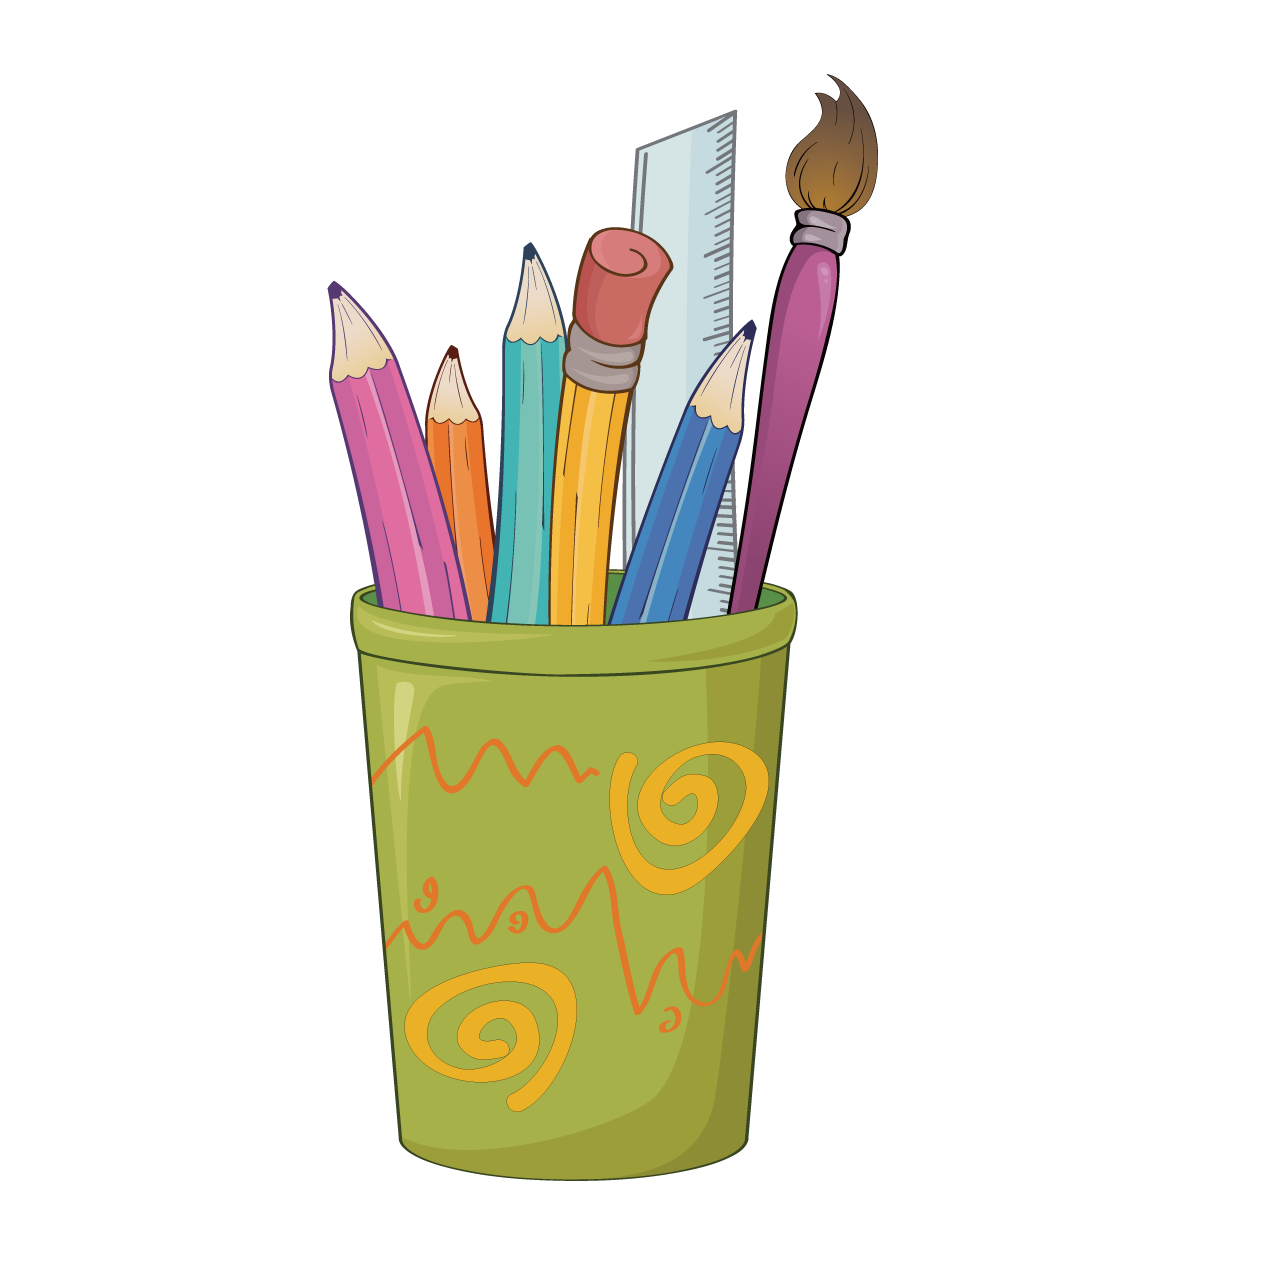 Clipart pencil art supply. Paper colored drawing clip